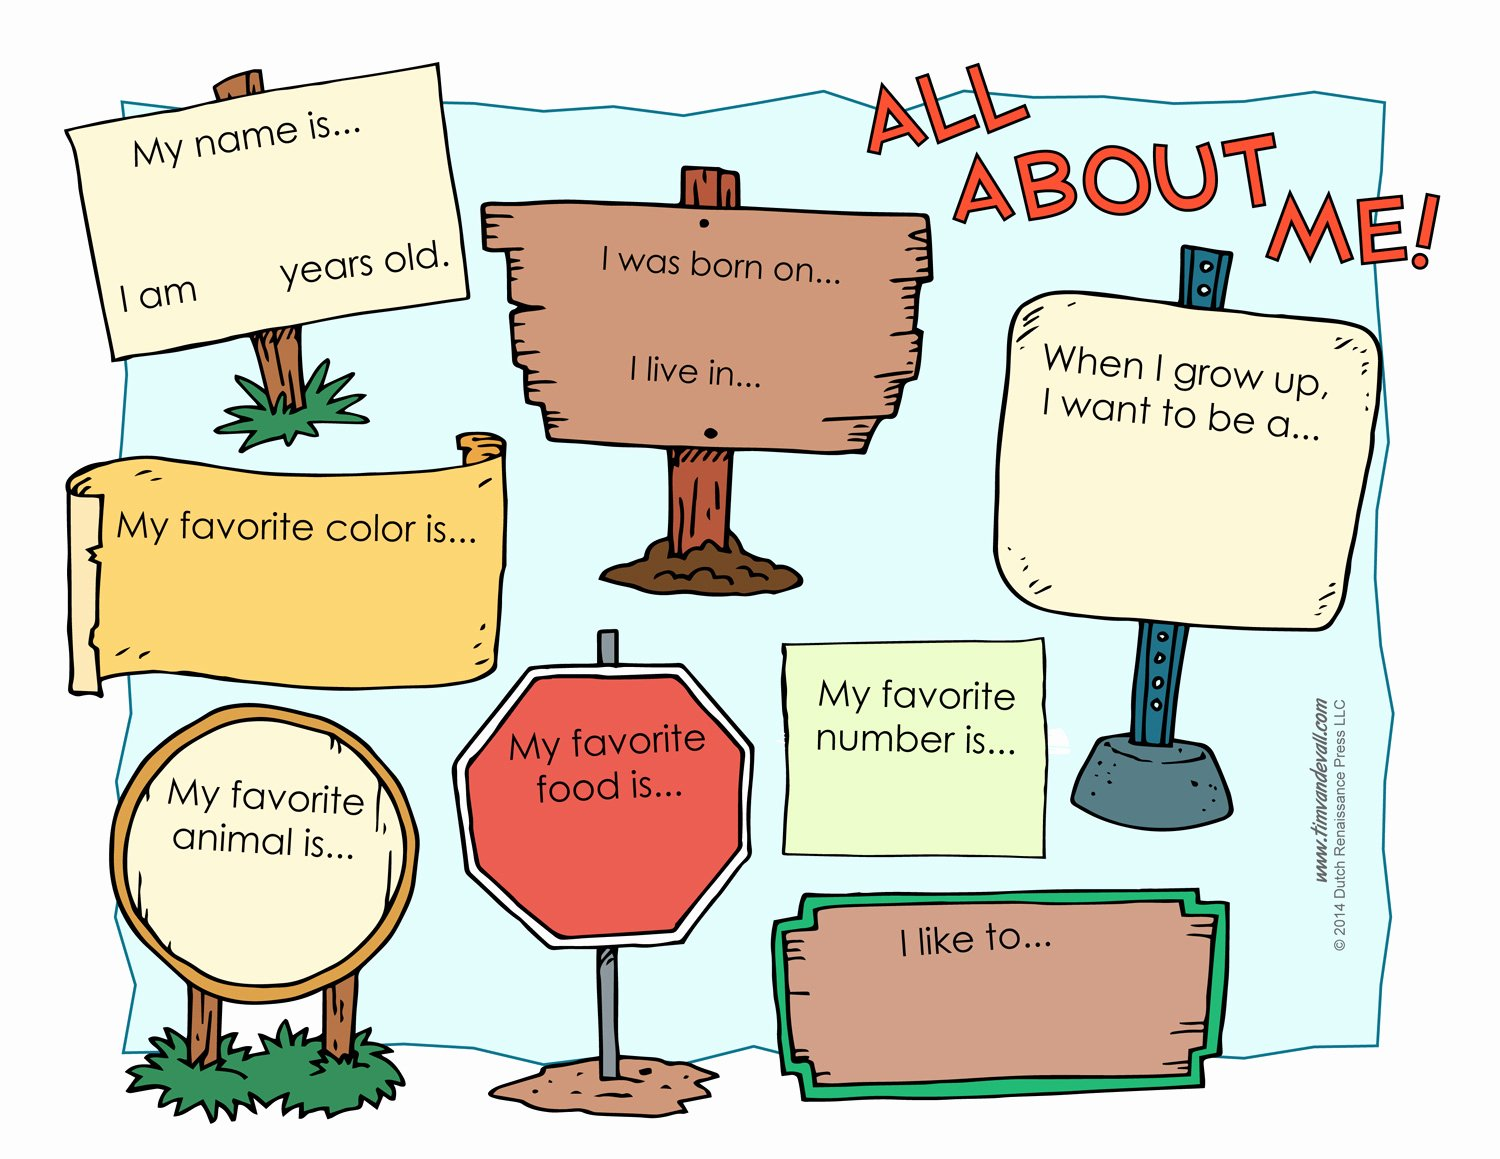 All About Me Printable Worksheet Unique All About Me Worksheet Printable